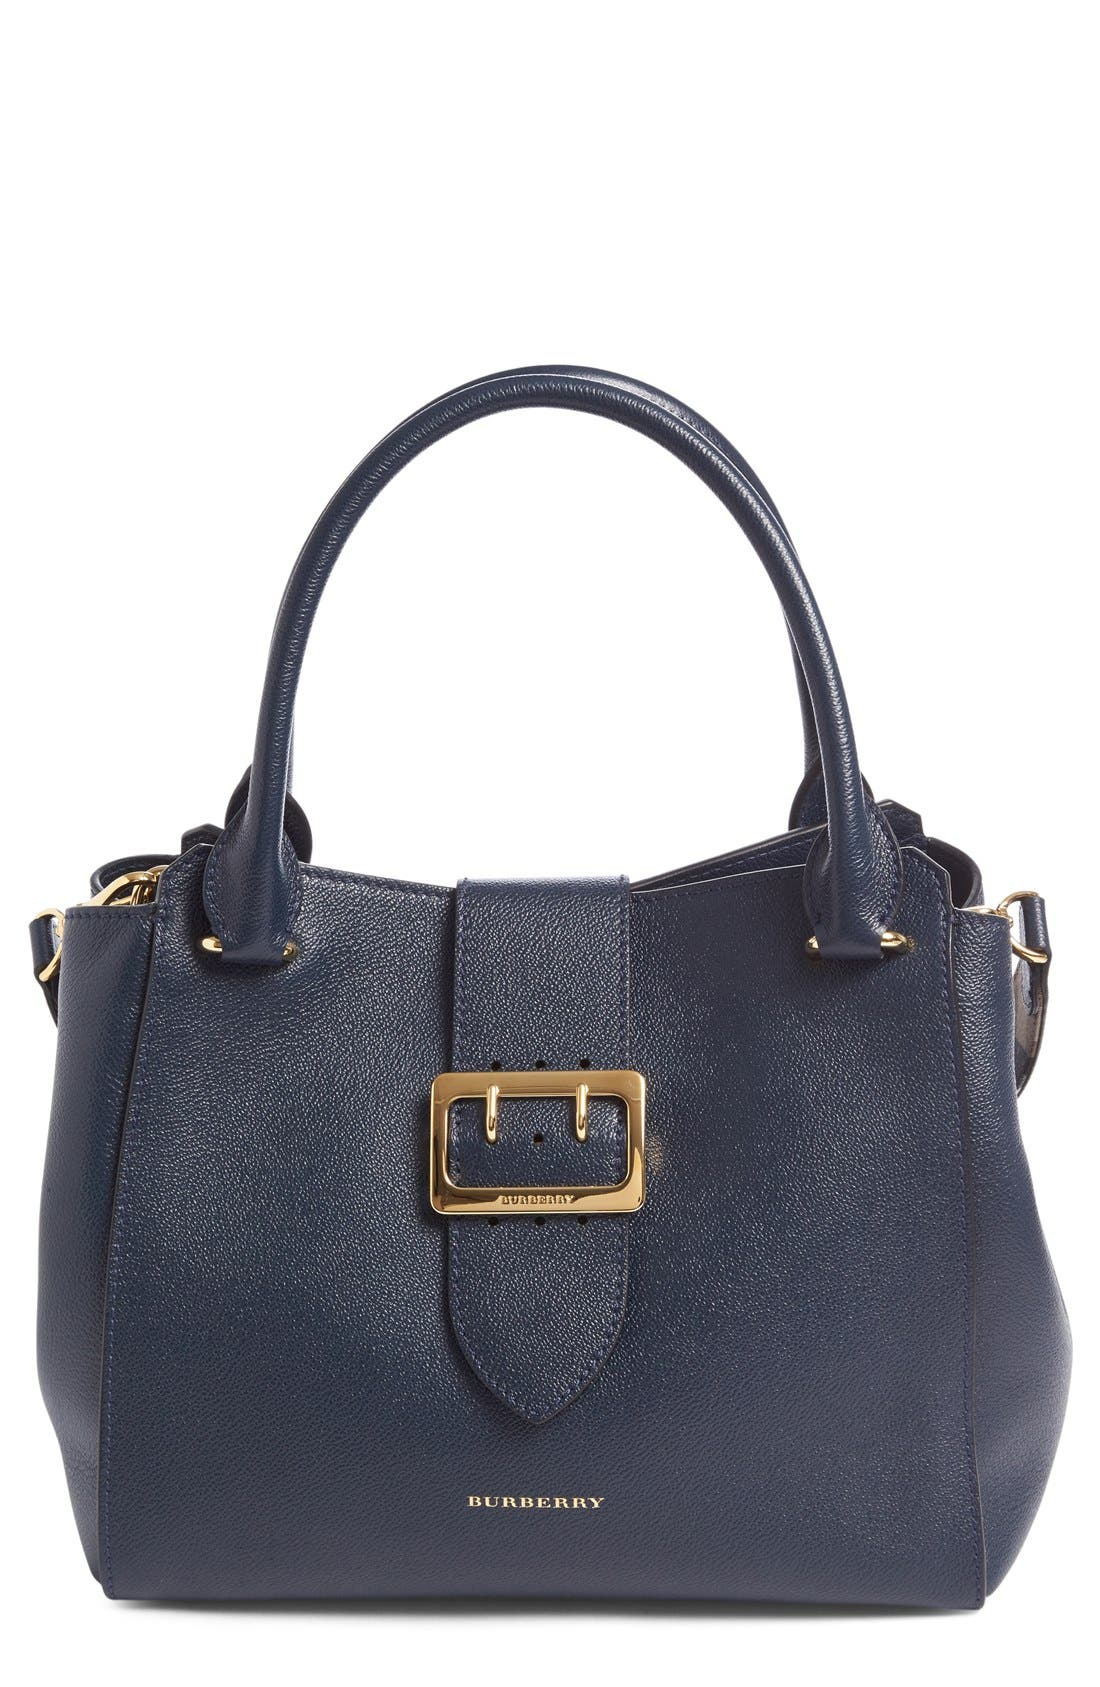 Main Image - Burberry Medium Buckle Calfskin Leather Tote